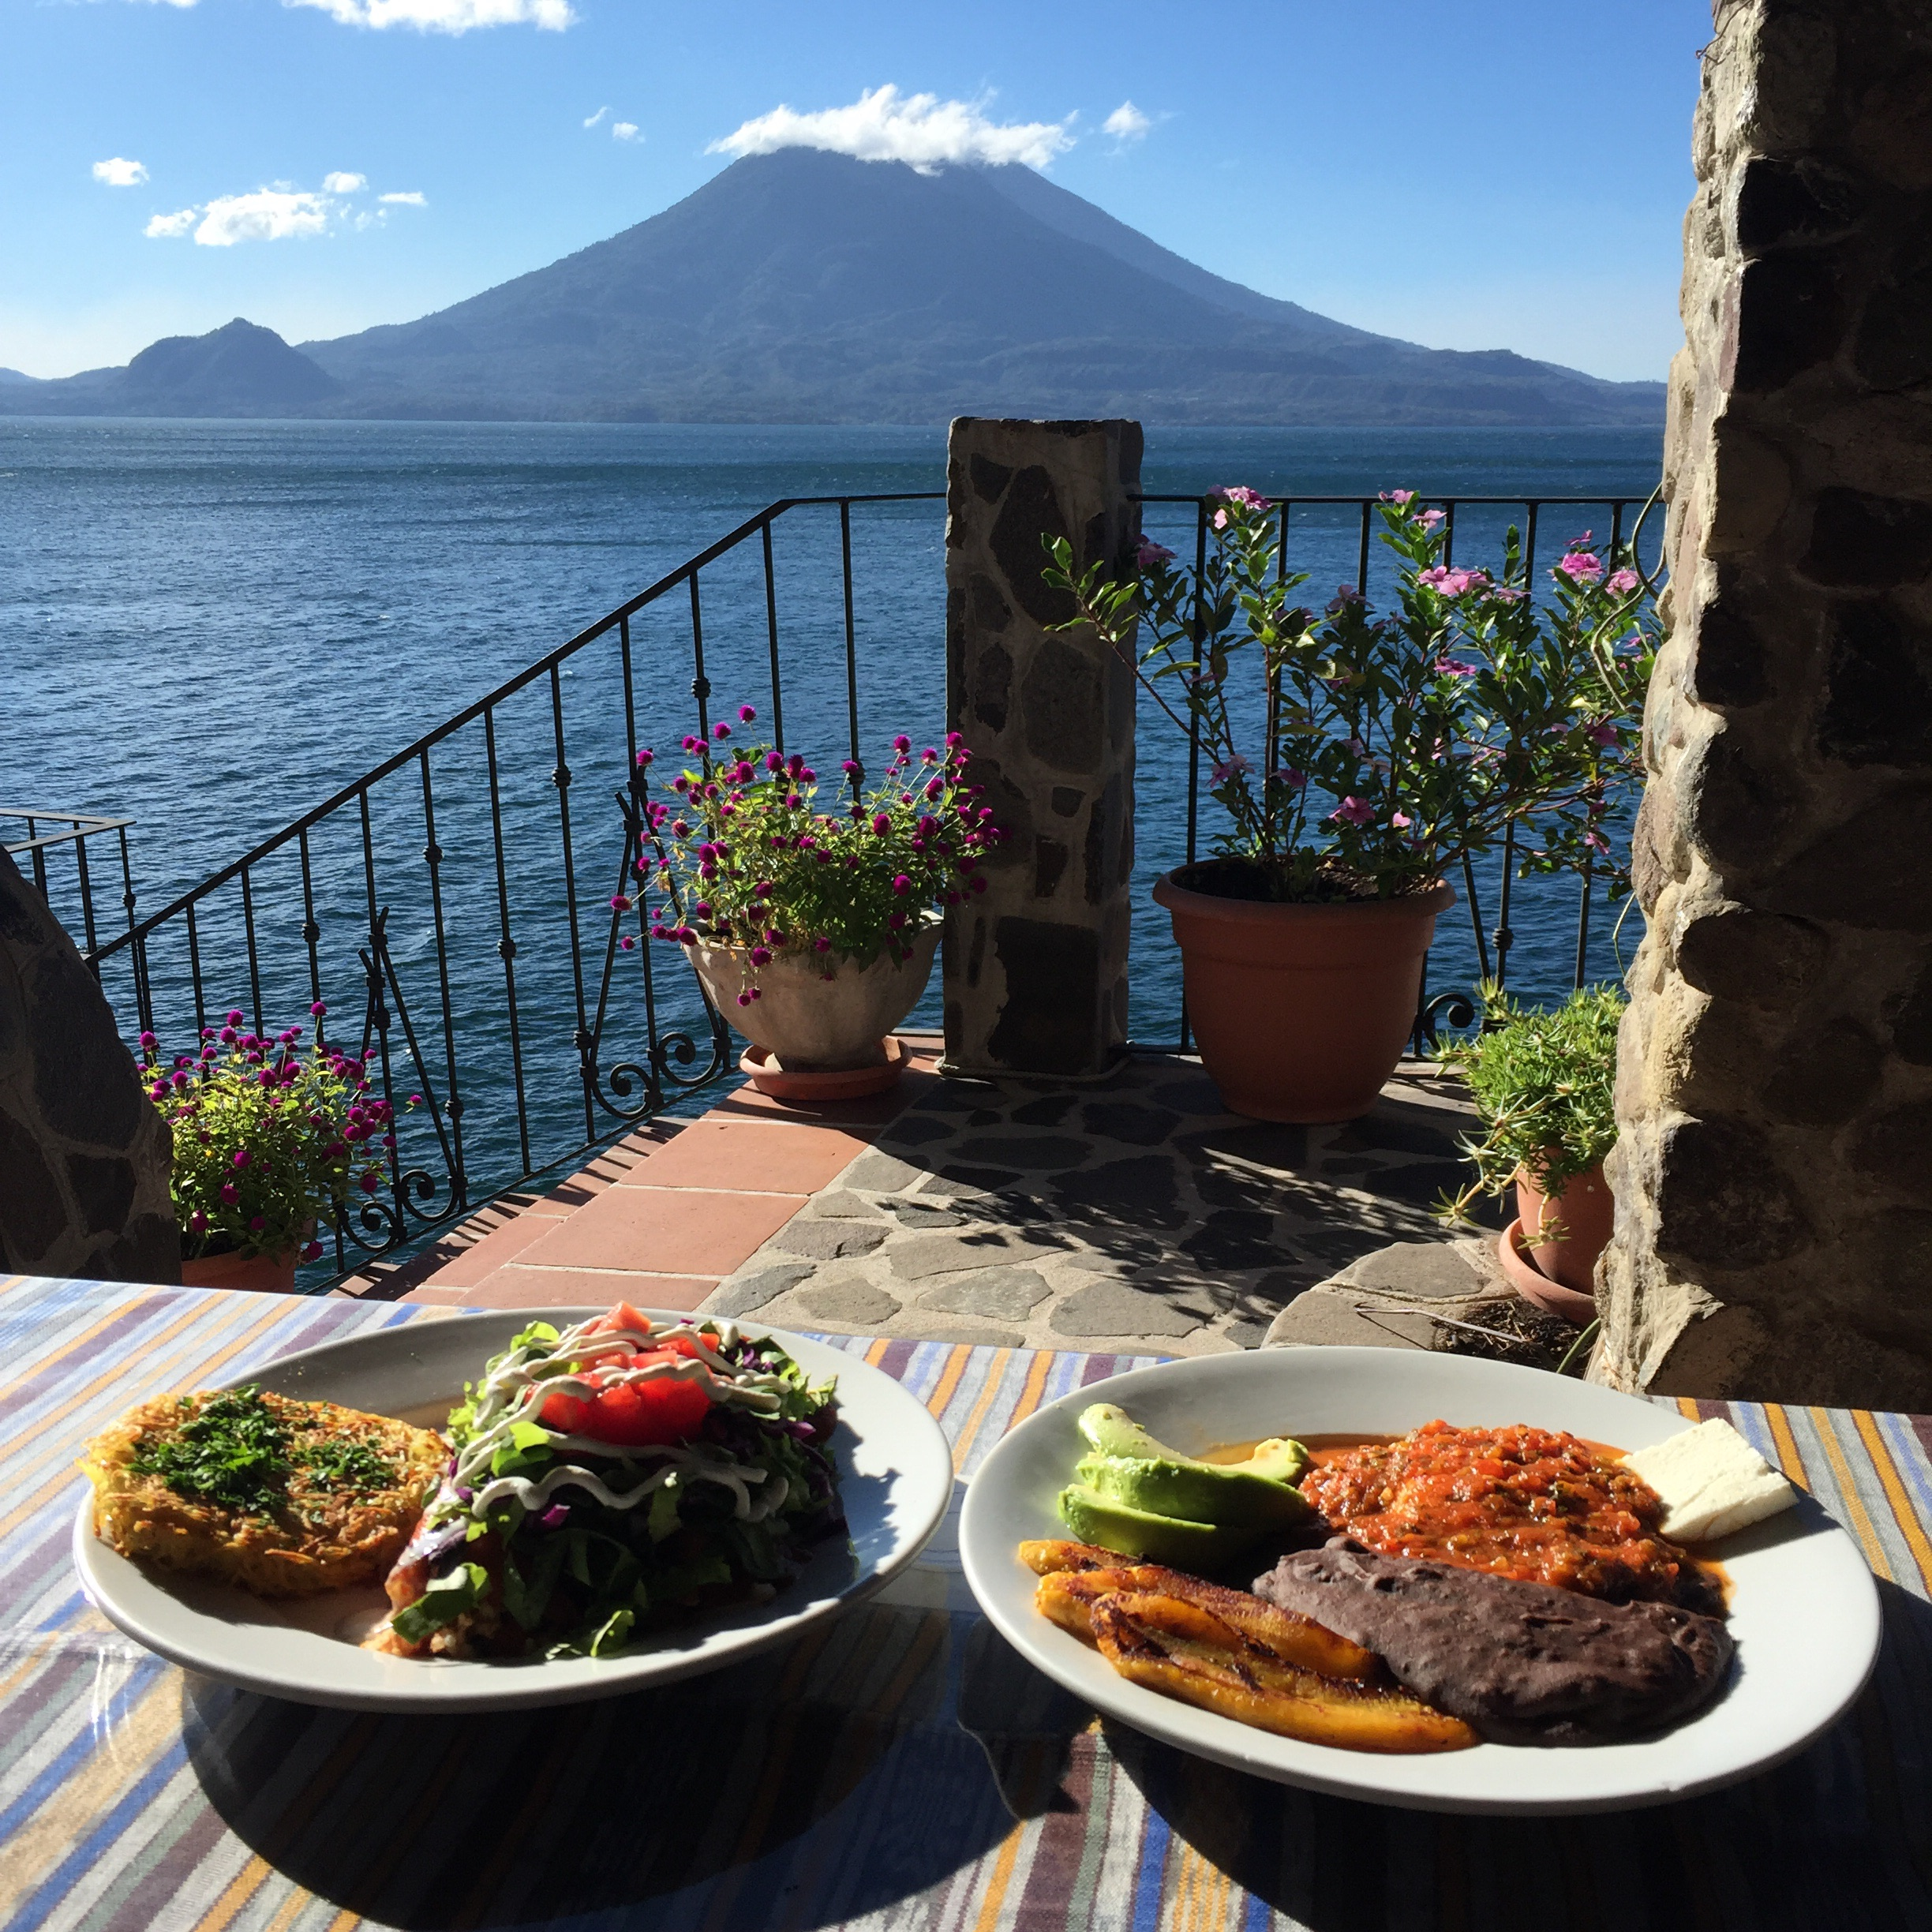 Breakfast with a view at Casa del Mundo on Lake Atitlan.